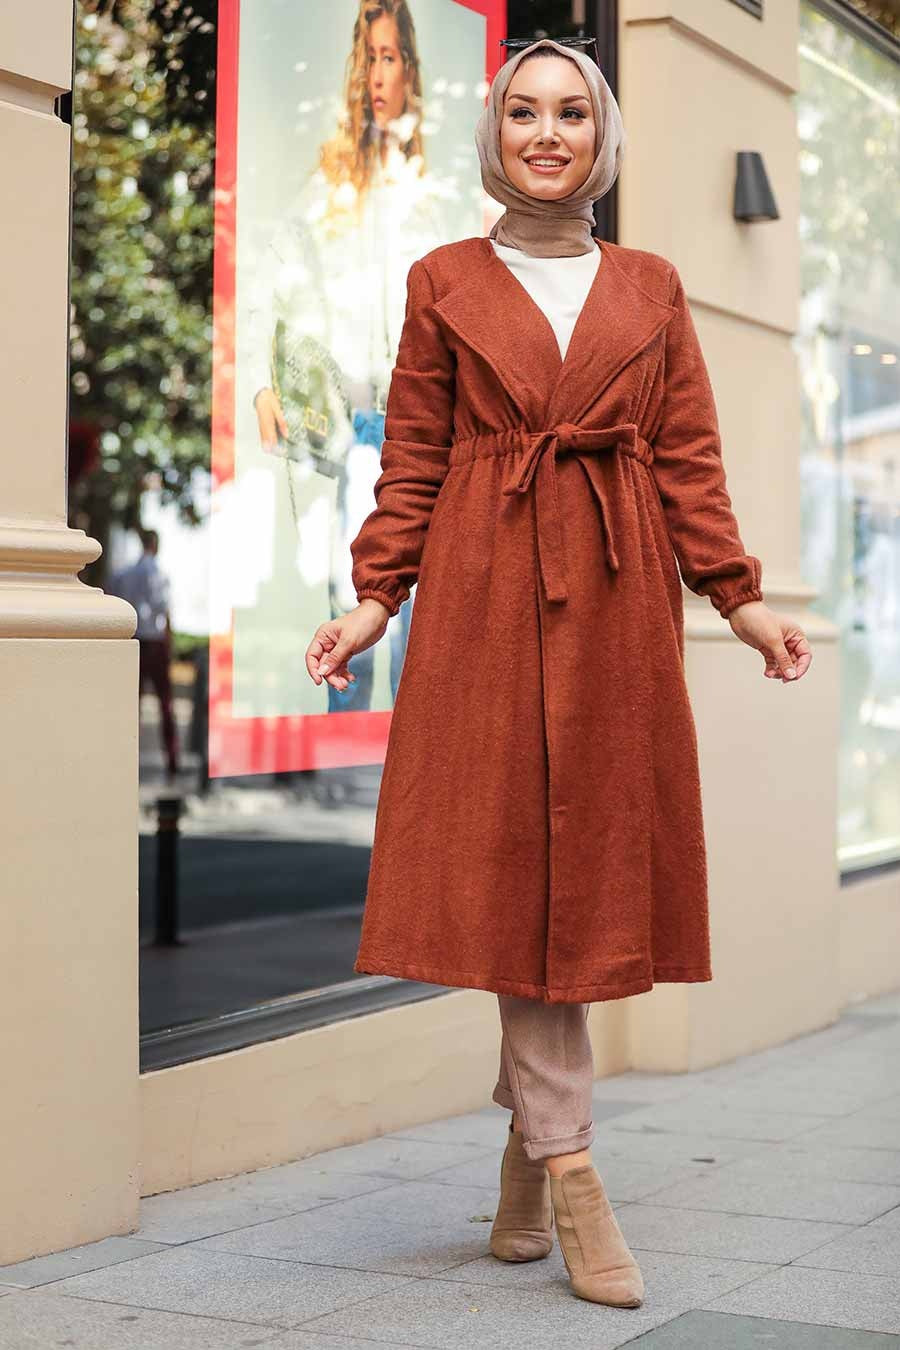 Women's Tie Waist Ginger Modest Coat